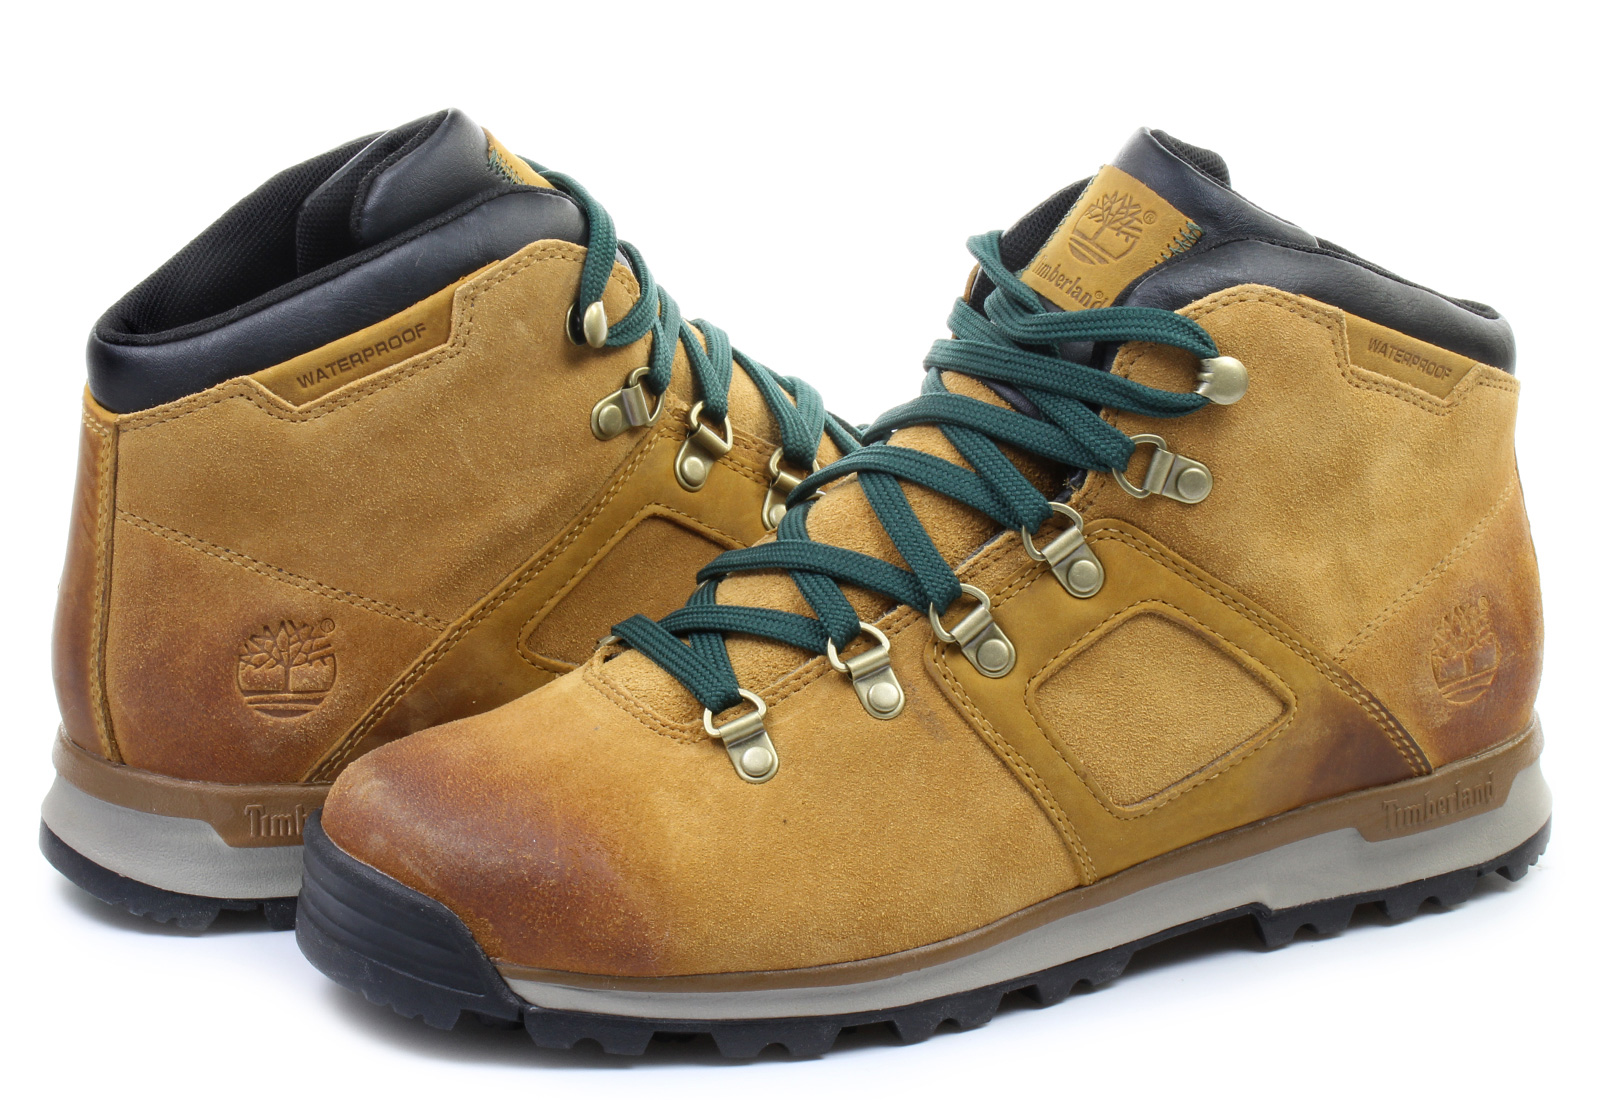 Timberland Boots - Scramble Mid - 2209R-WHE